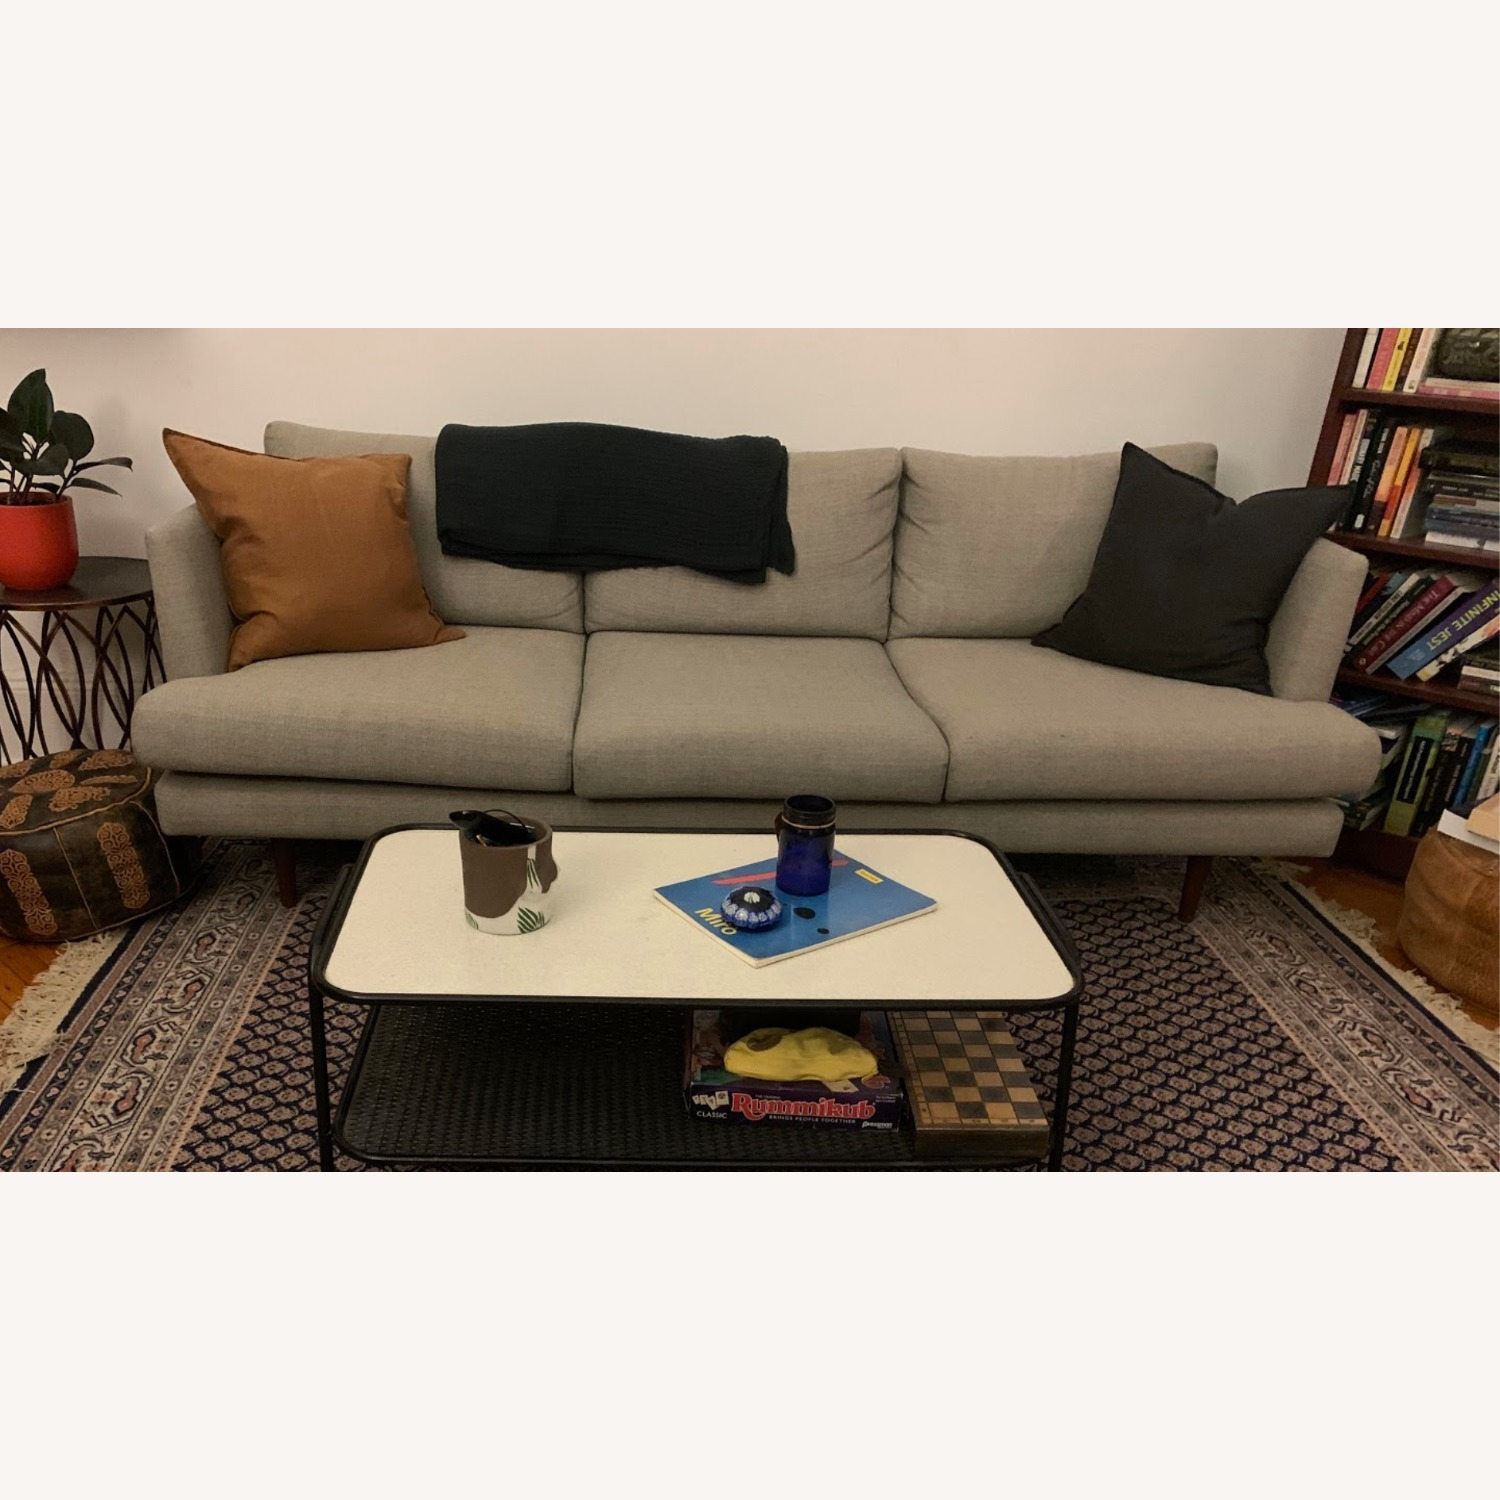 Comfortable Mid-Century Modern Light Grey Couch - image-2